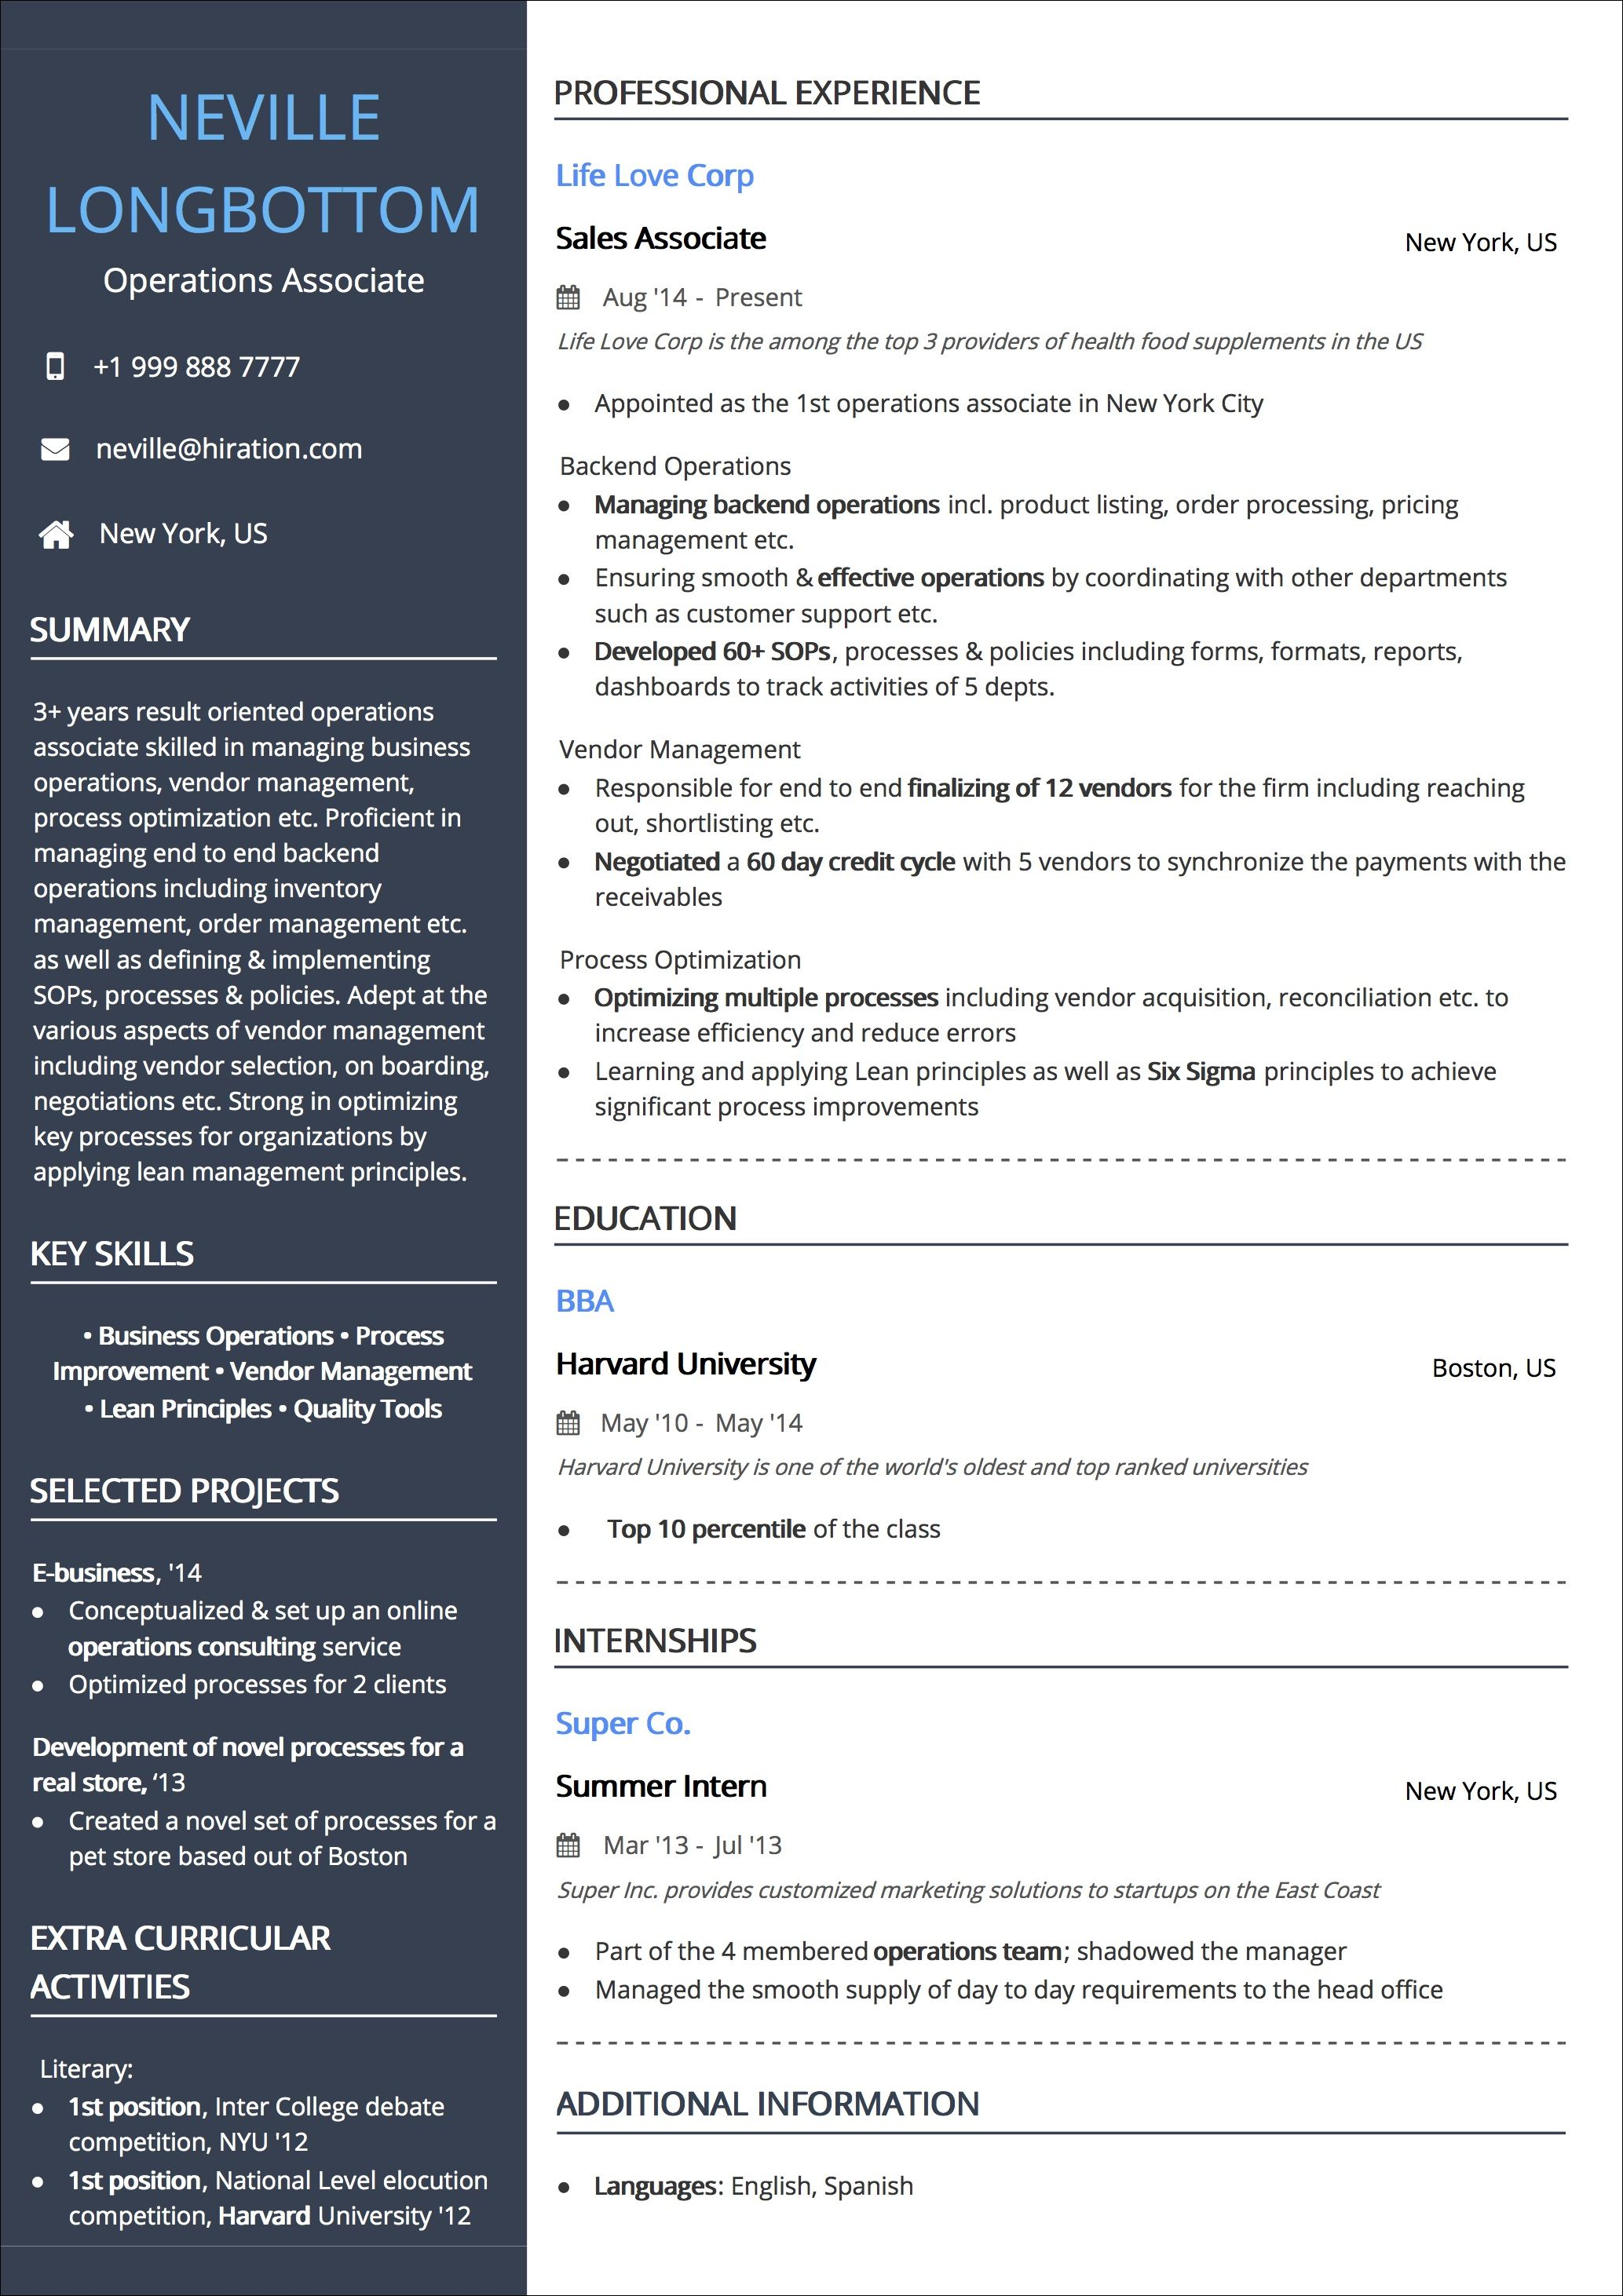 Resume Templates The 2020 Guide To Choosing The Best